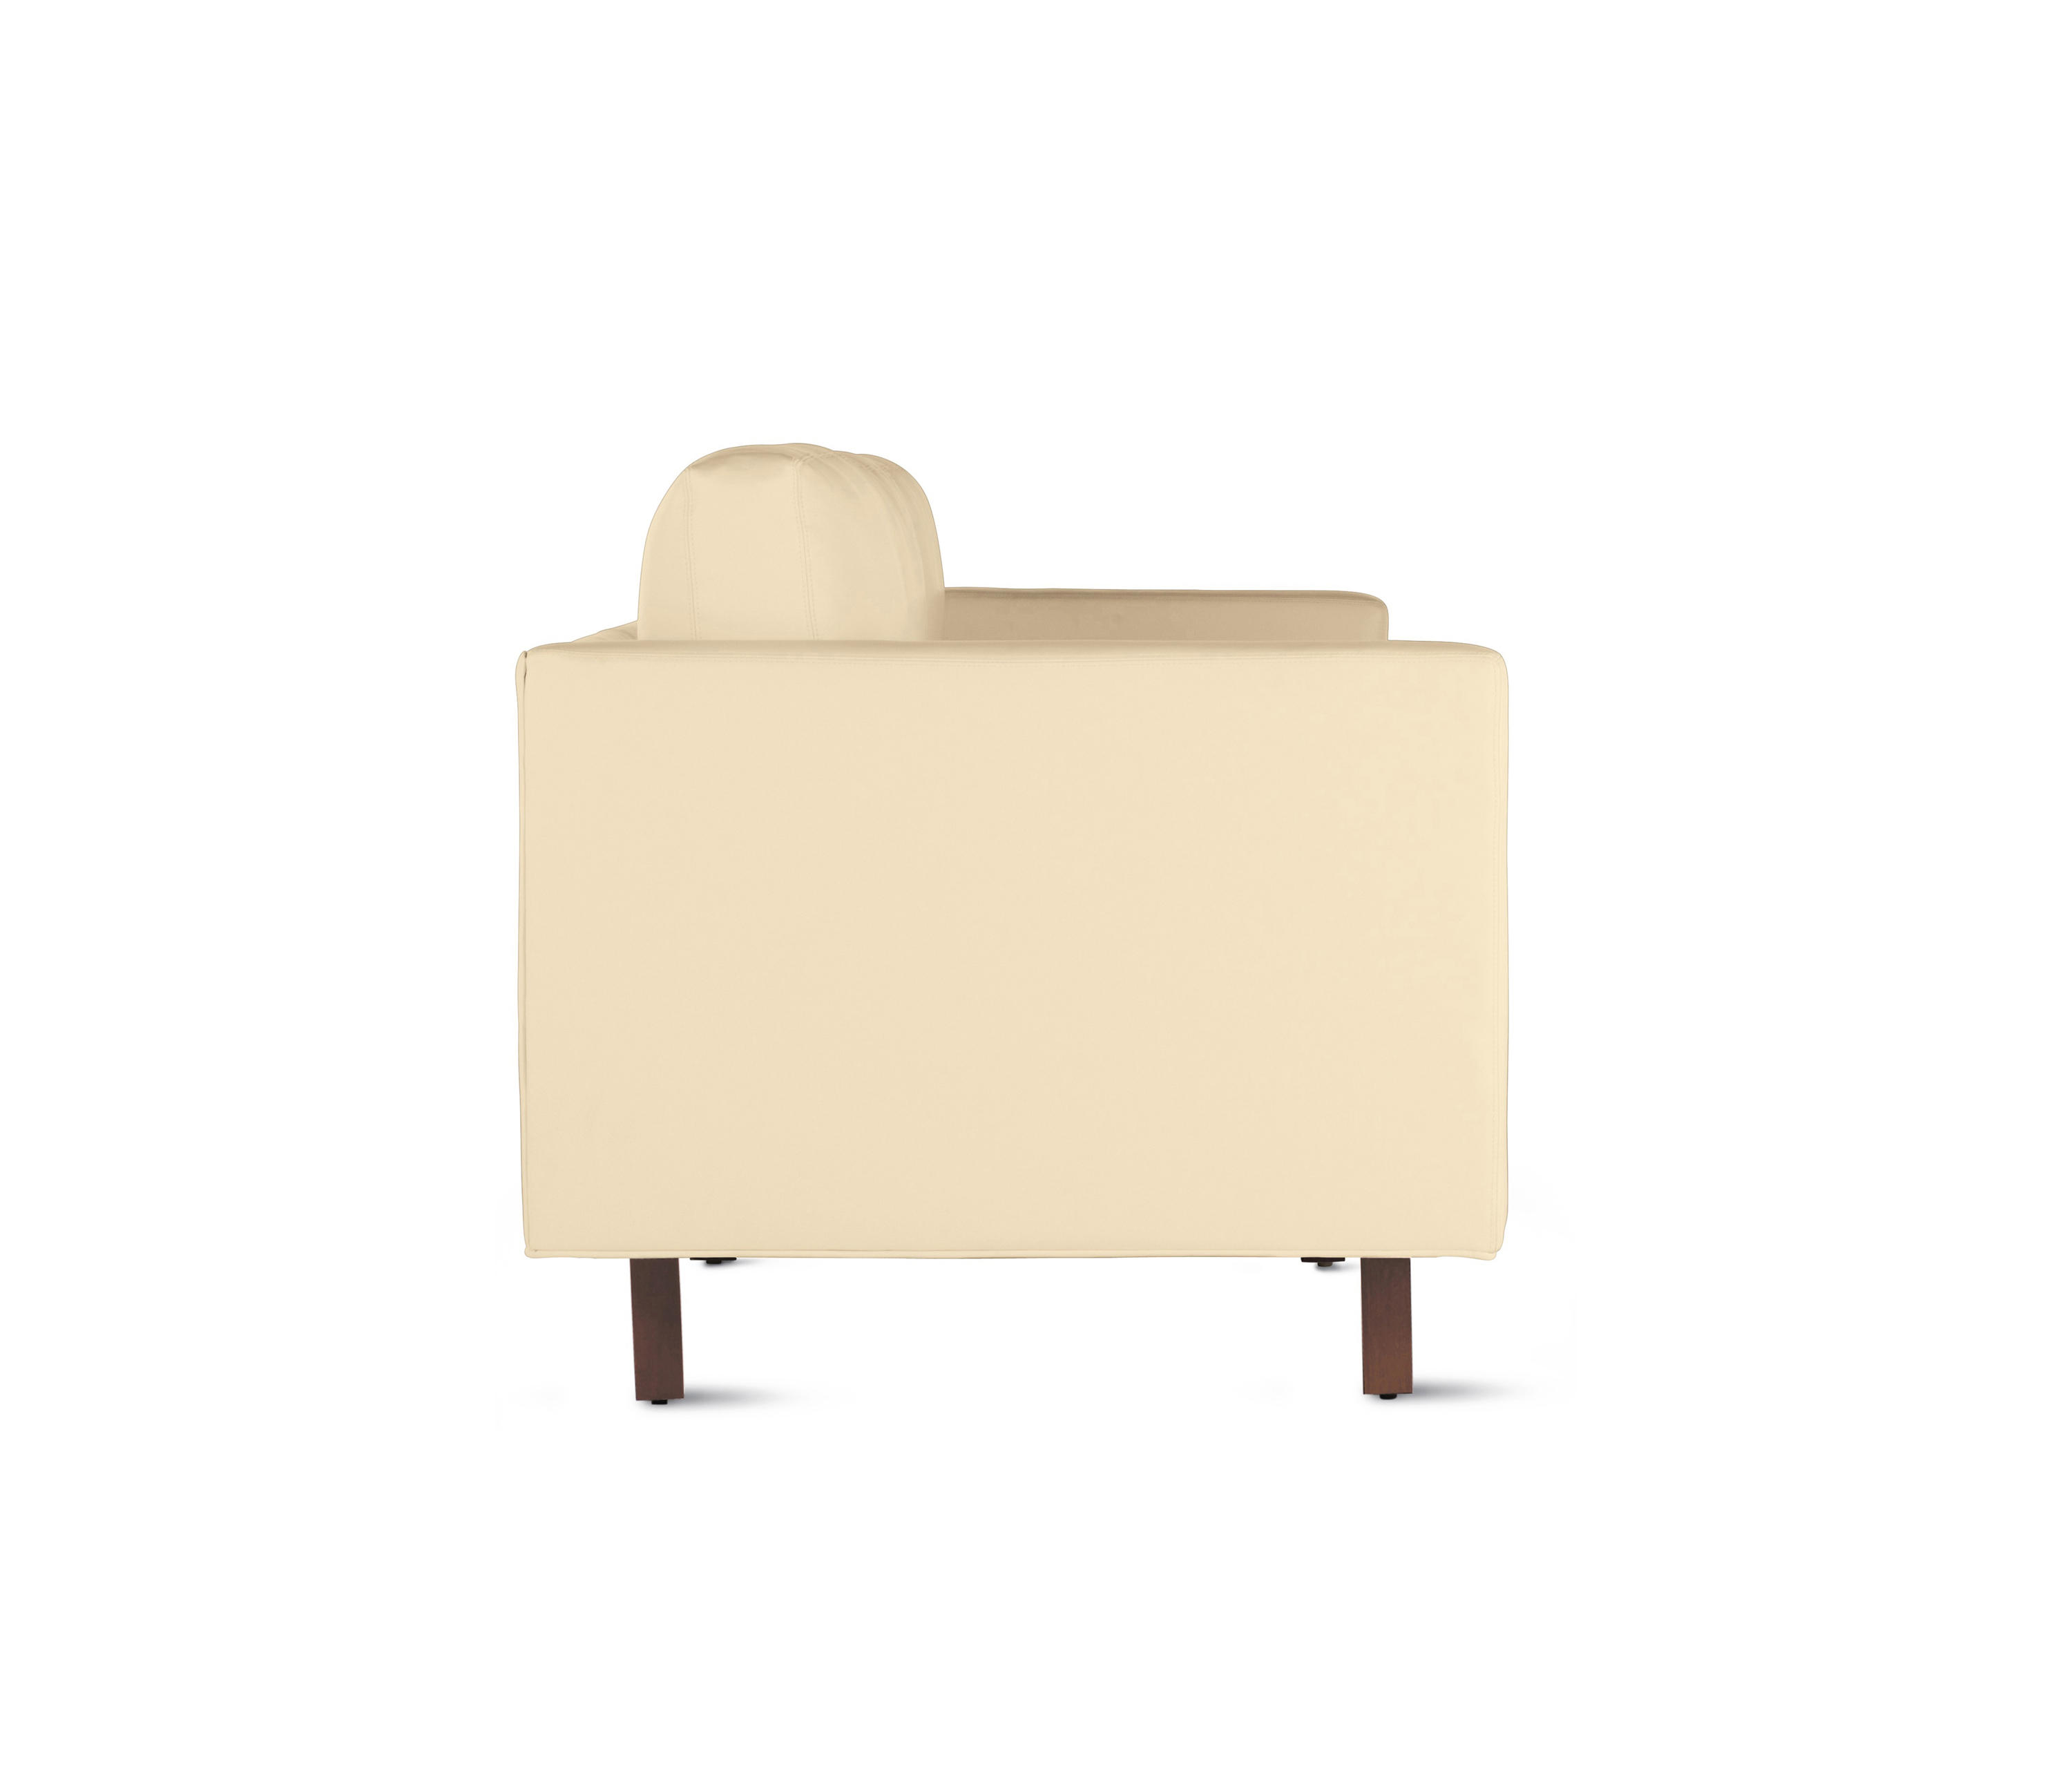 design within reach chair walnut folding ladder goodland sofa in leather legs sofas from